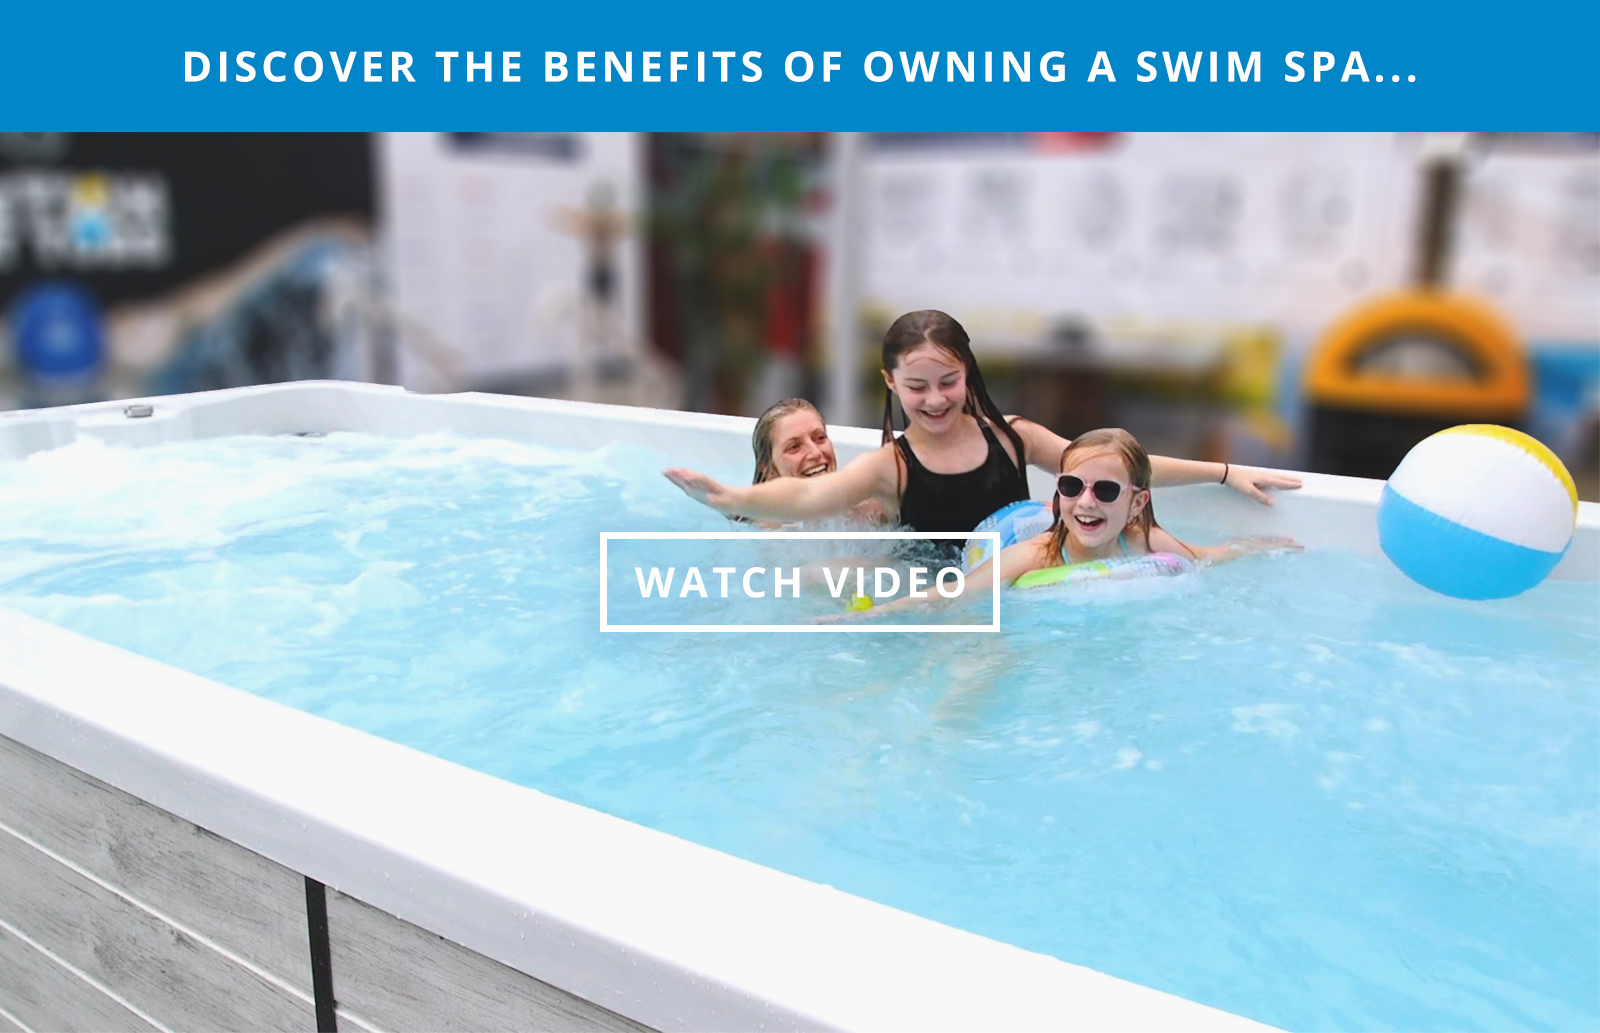 swim spa benefits video